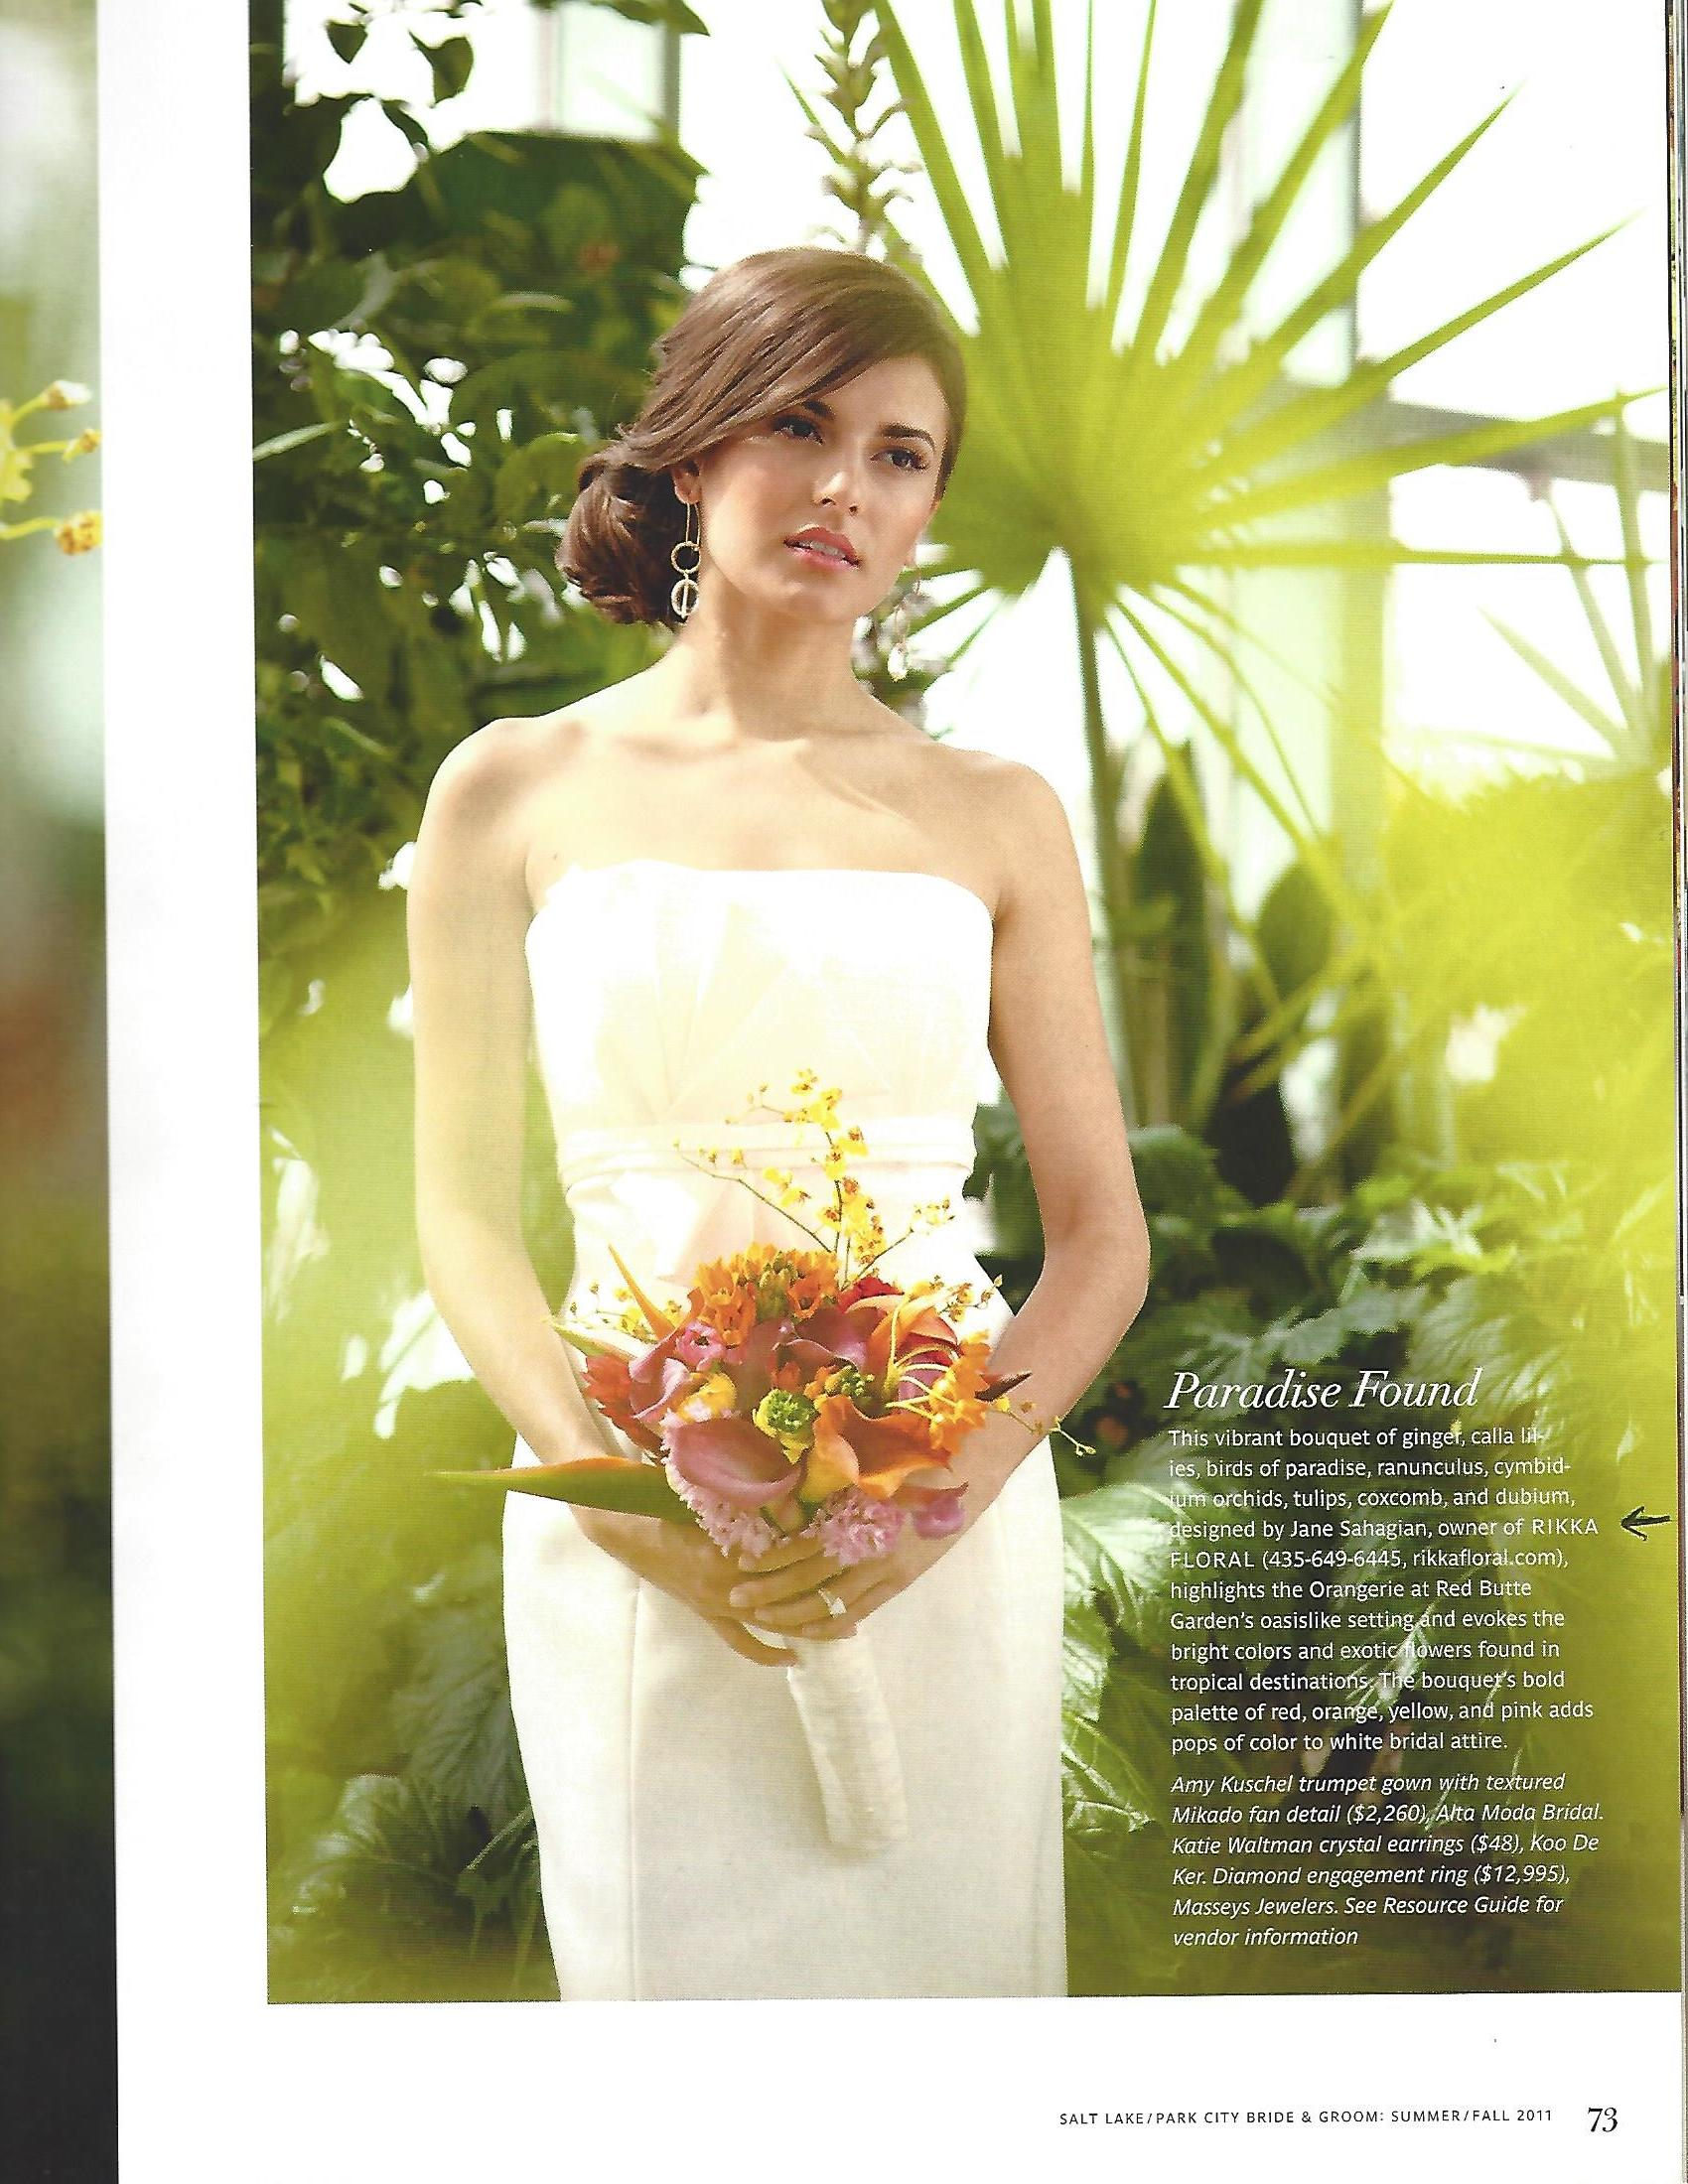 Rikka's Bridal Bouquet in centerfold in inaugural edition of Salt Lake - Park City Bride & Groom (Summer Fall 2011)_Page_2.jpg